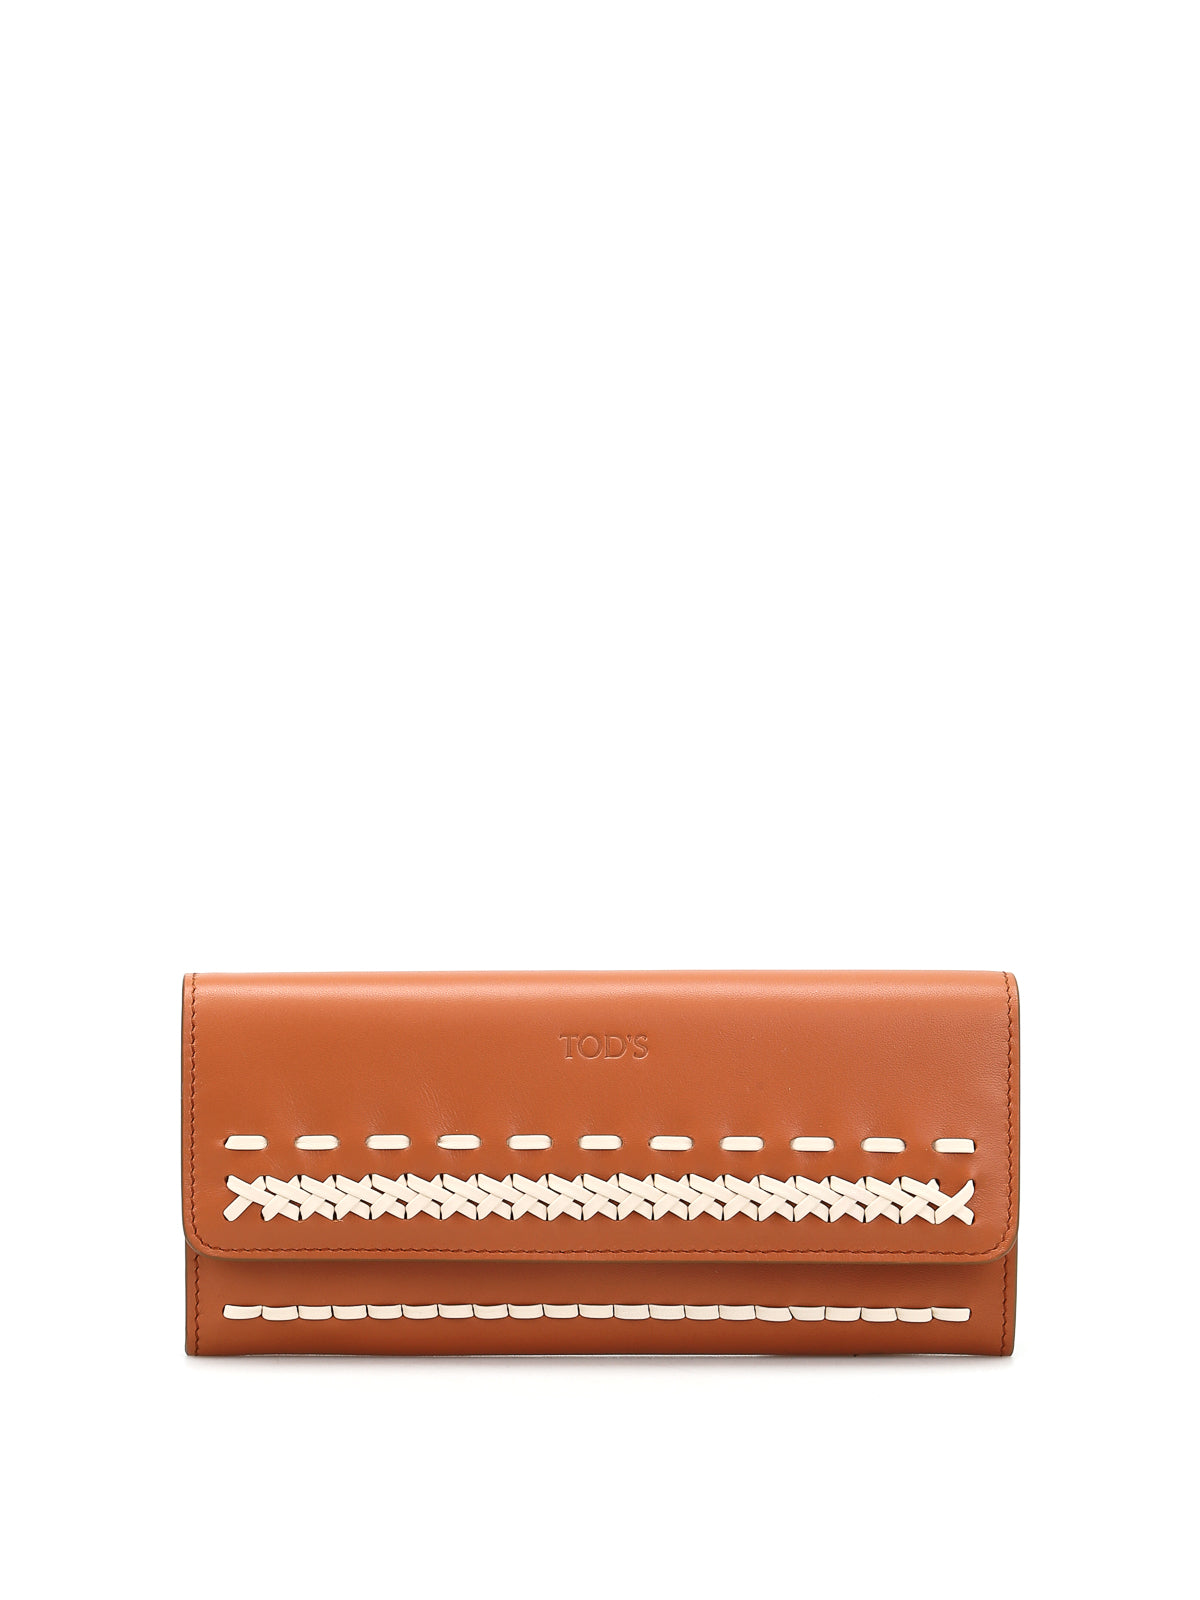 TOD'S BRAIDED DETAIL FLAP LEATHER WALLET